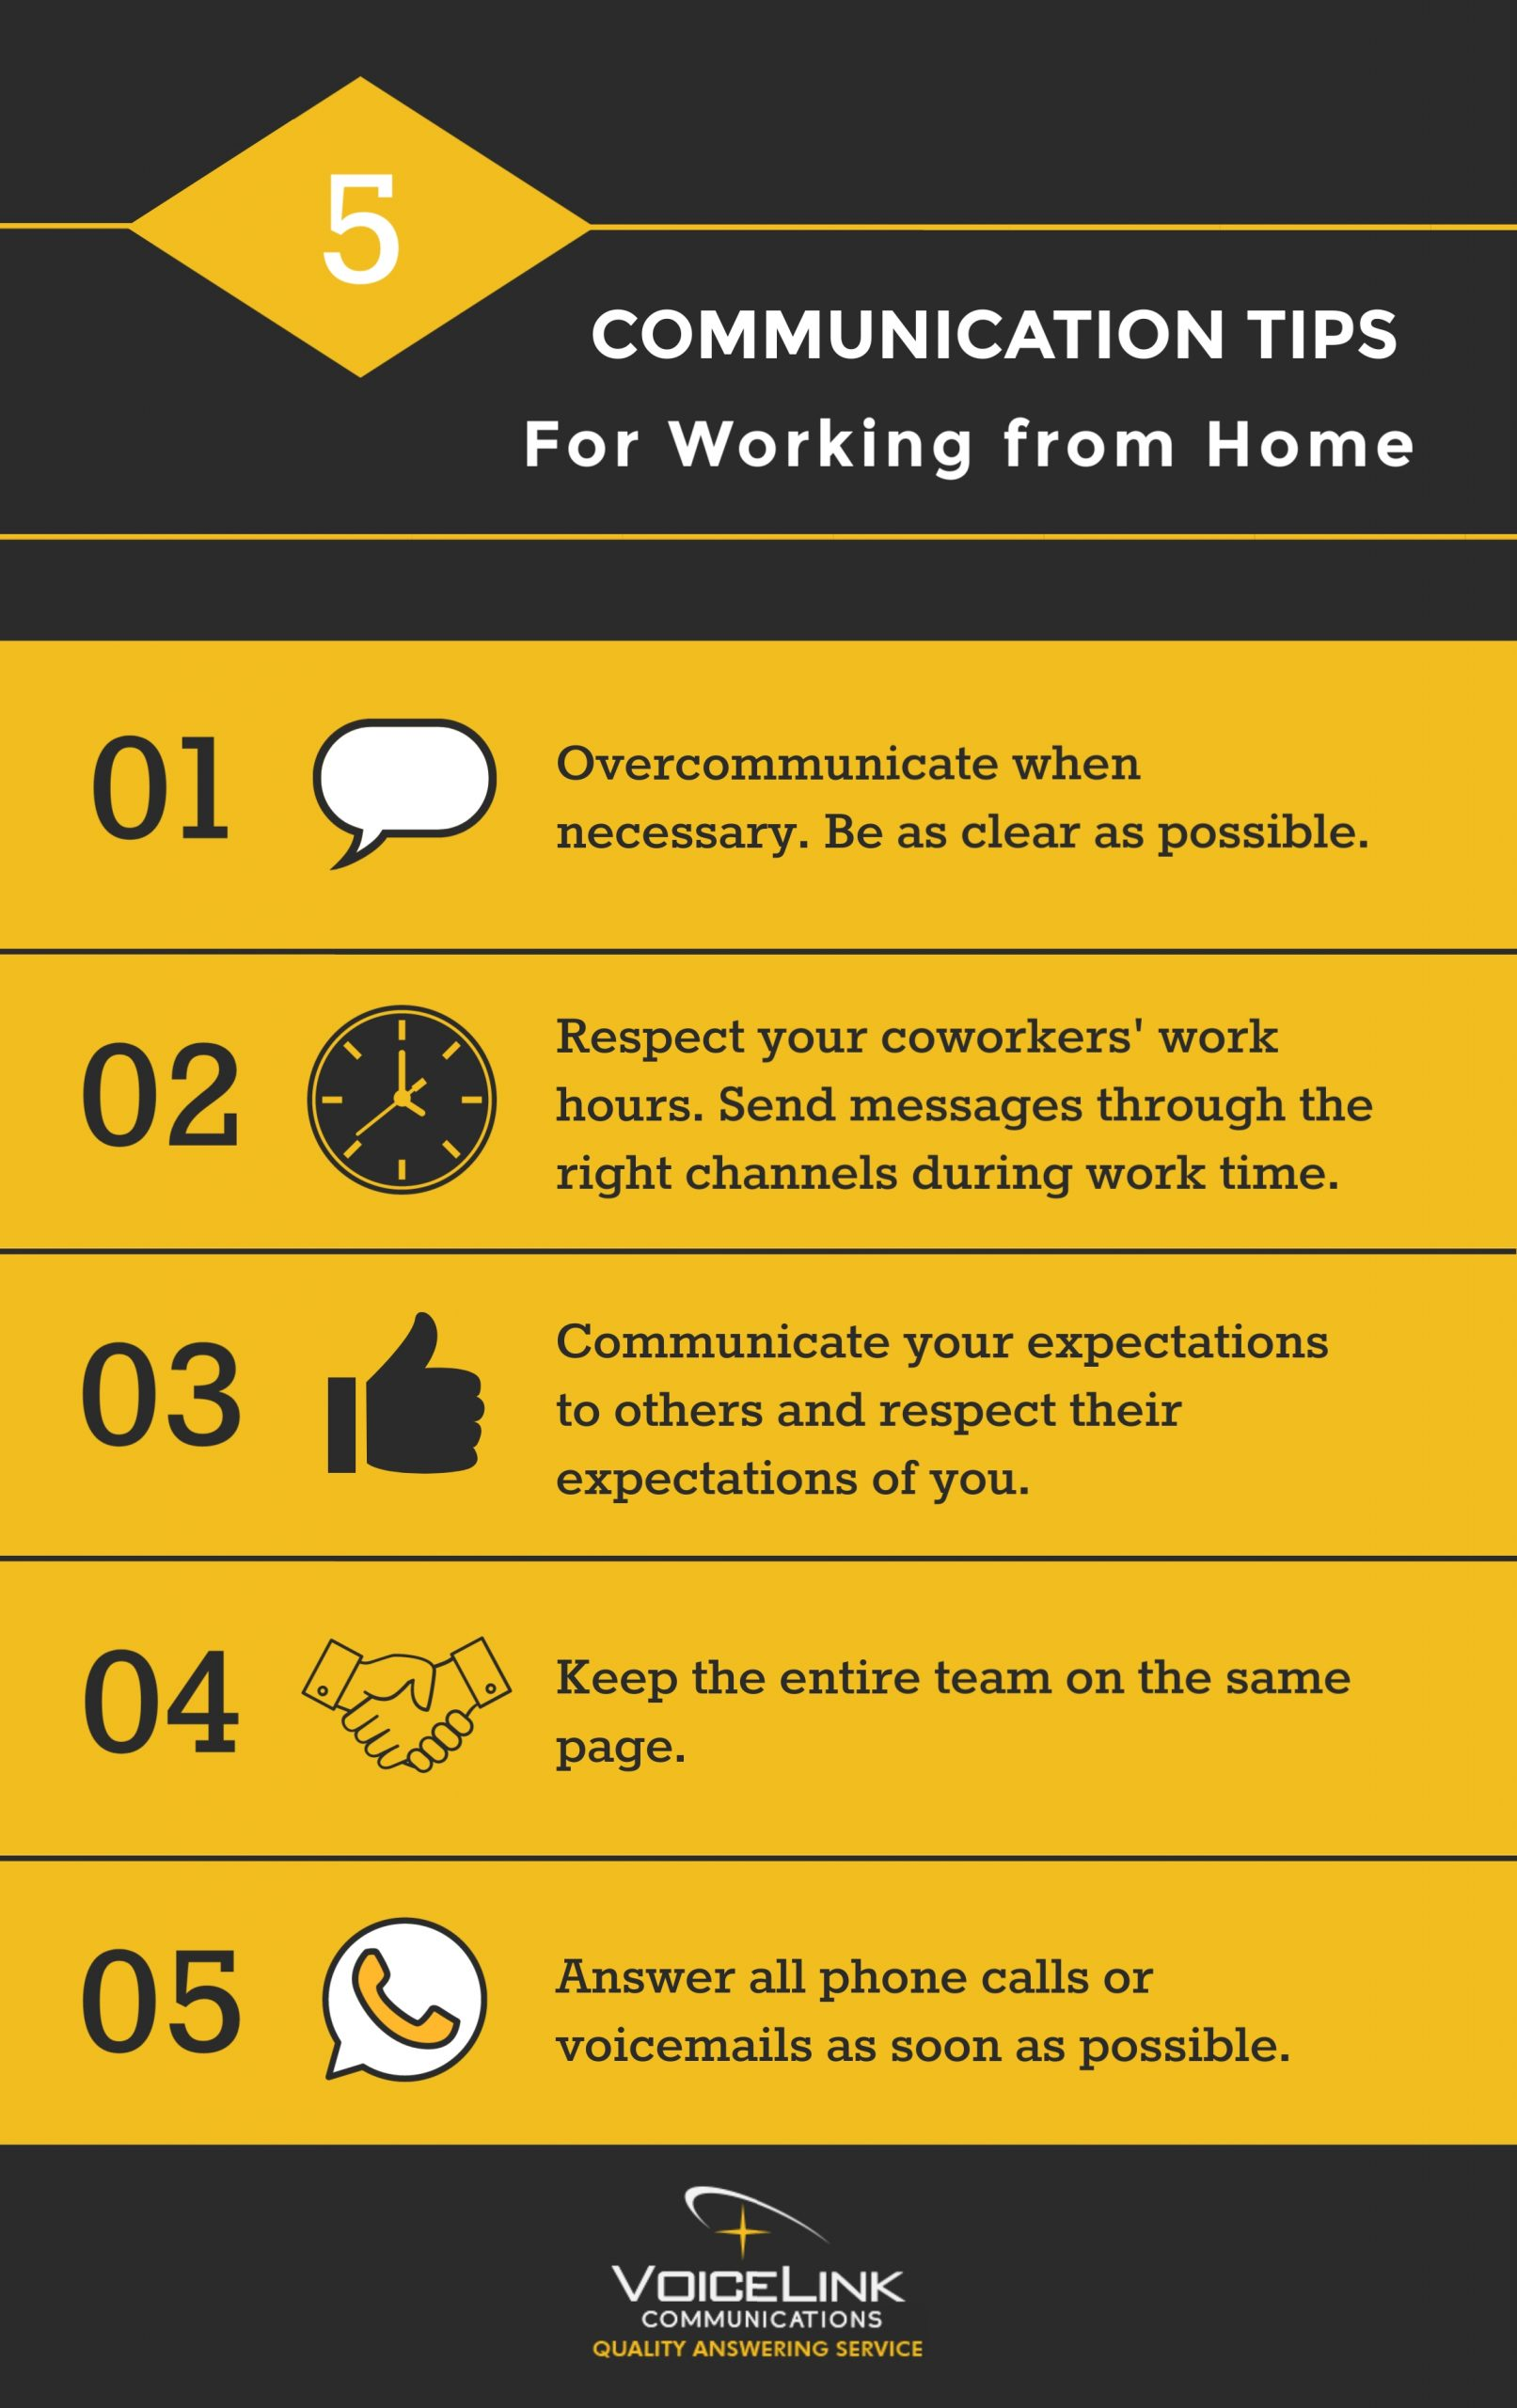 5 Communication Tips for Working from Home VoiceLink Communications